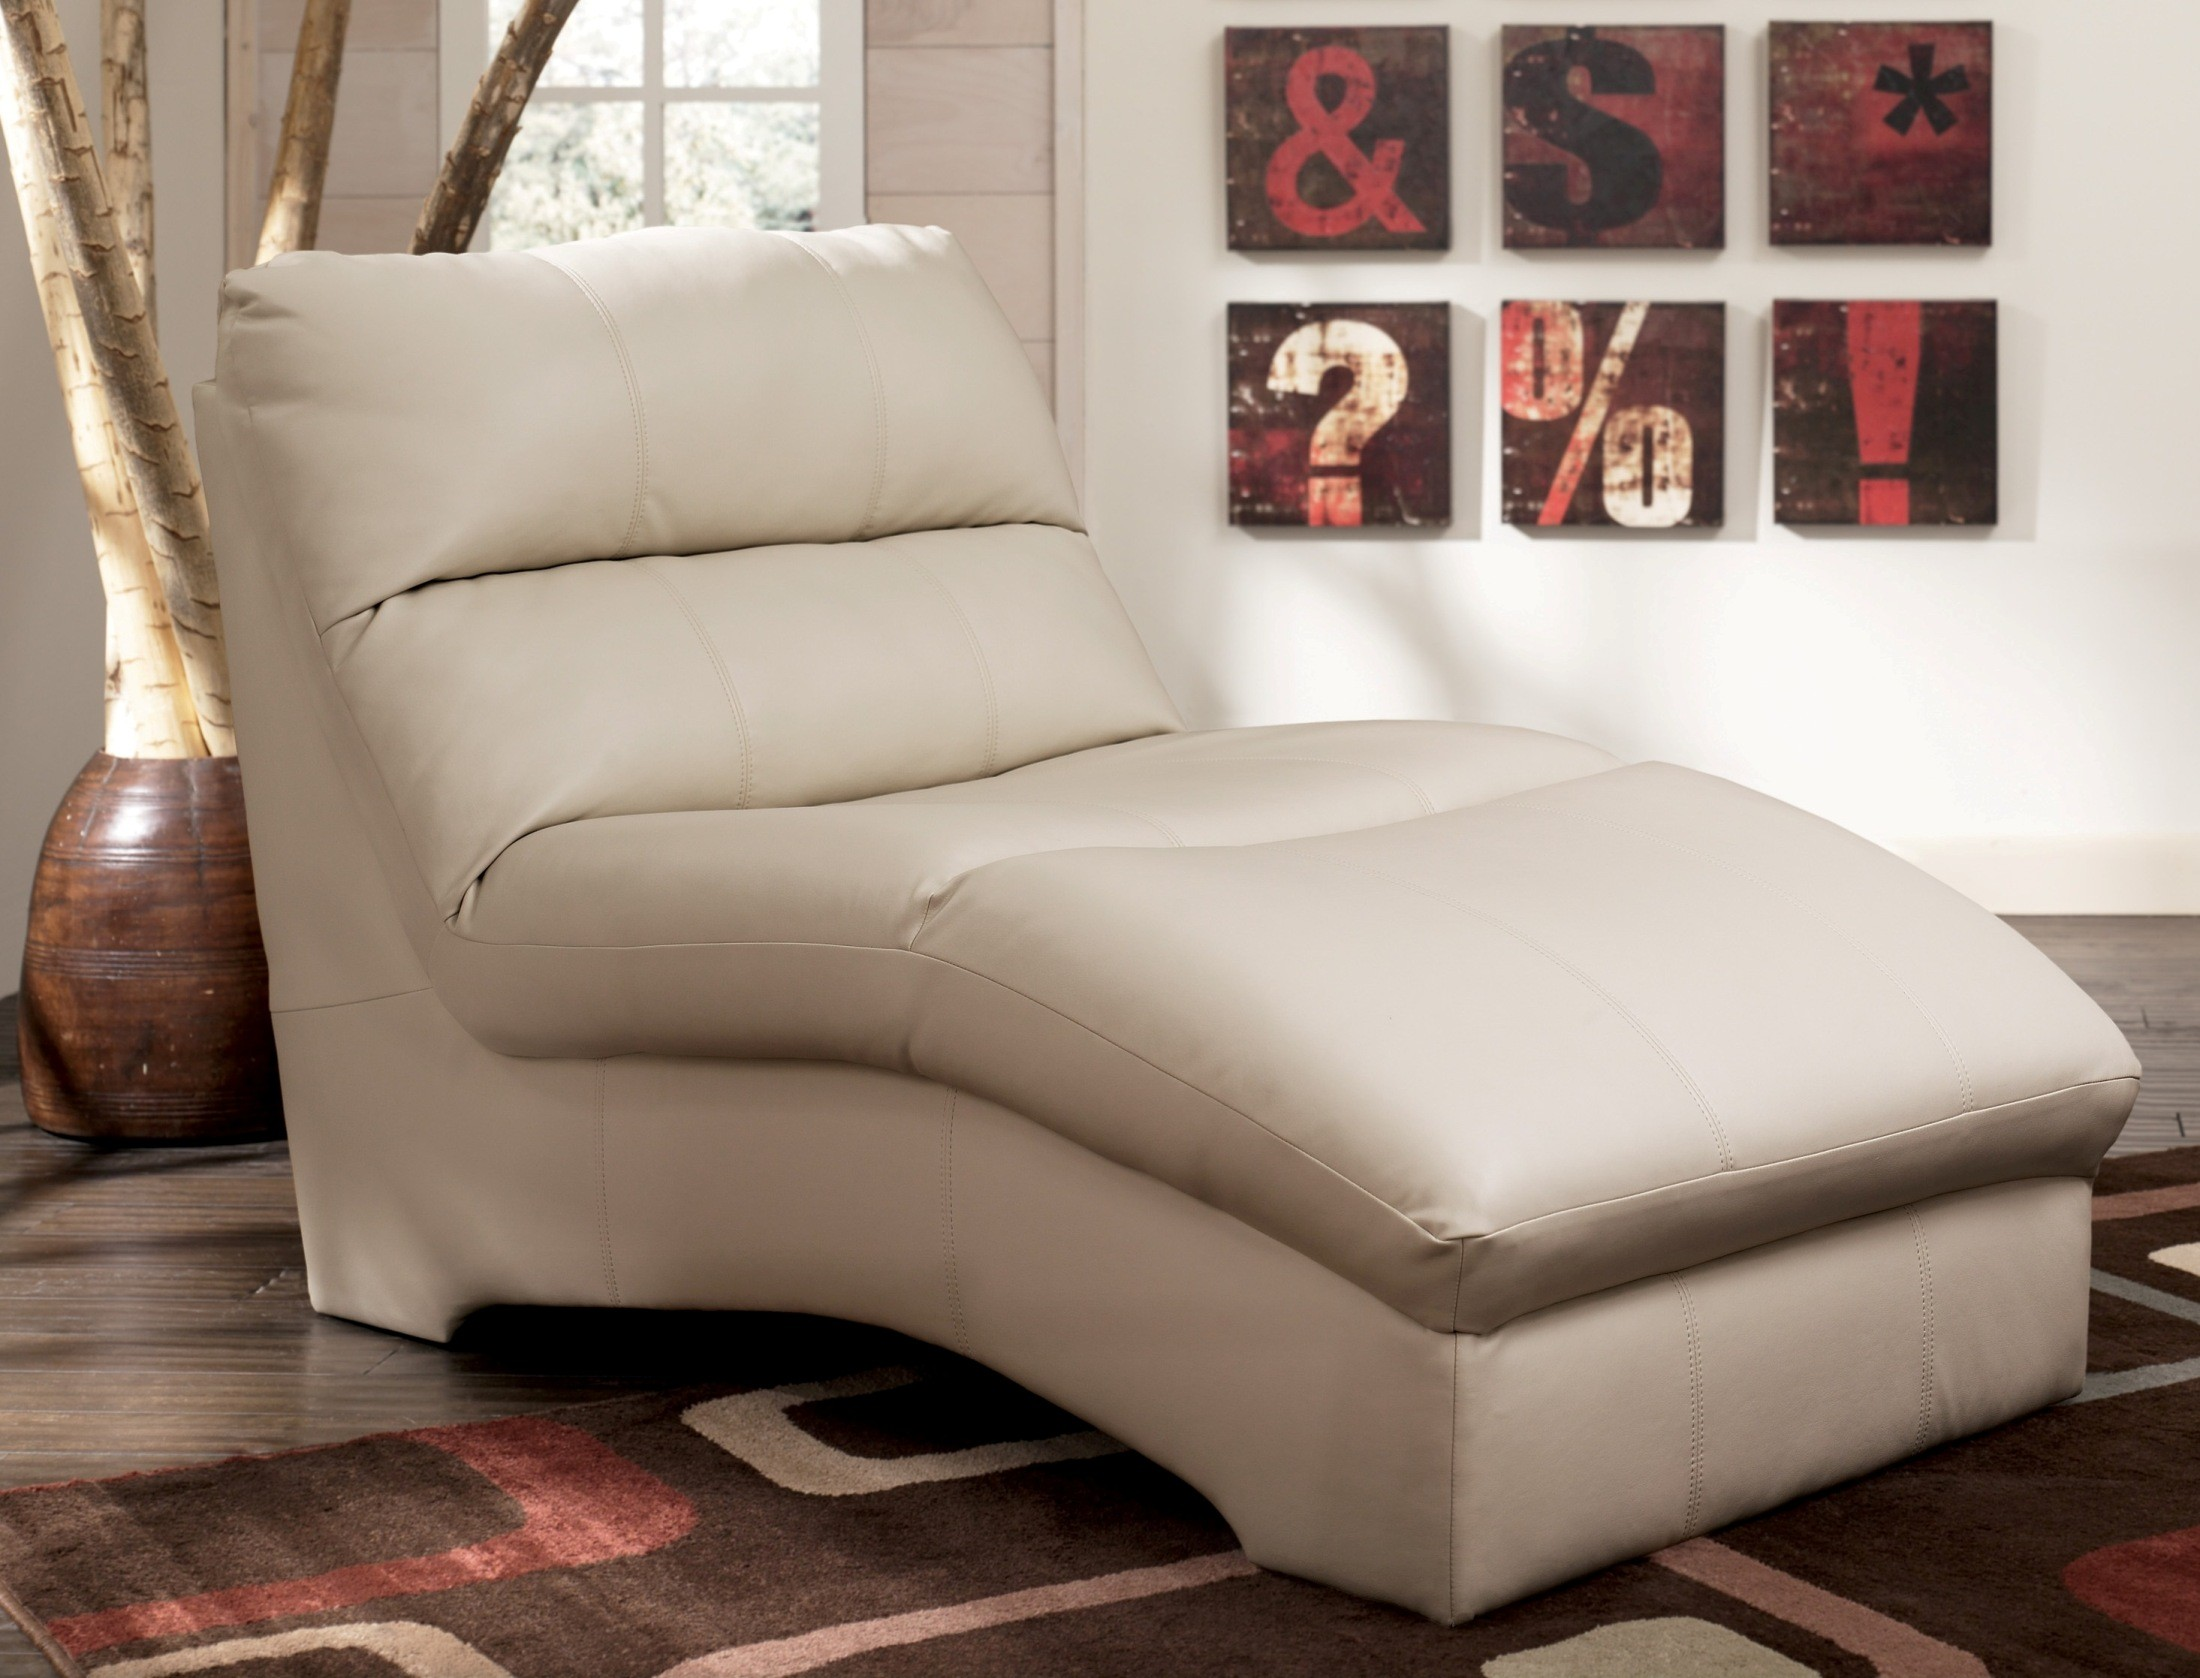 Durablend ivory chaise 9270215 for Ashley durablend chaise